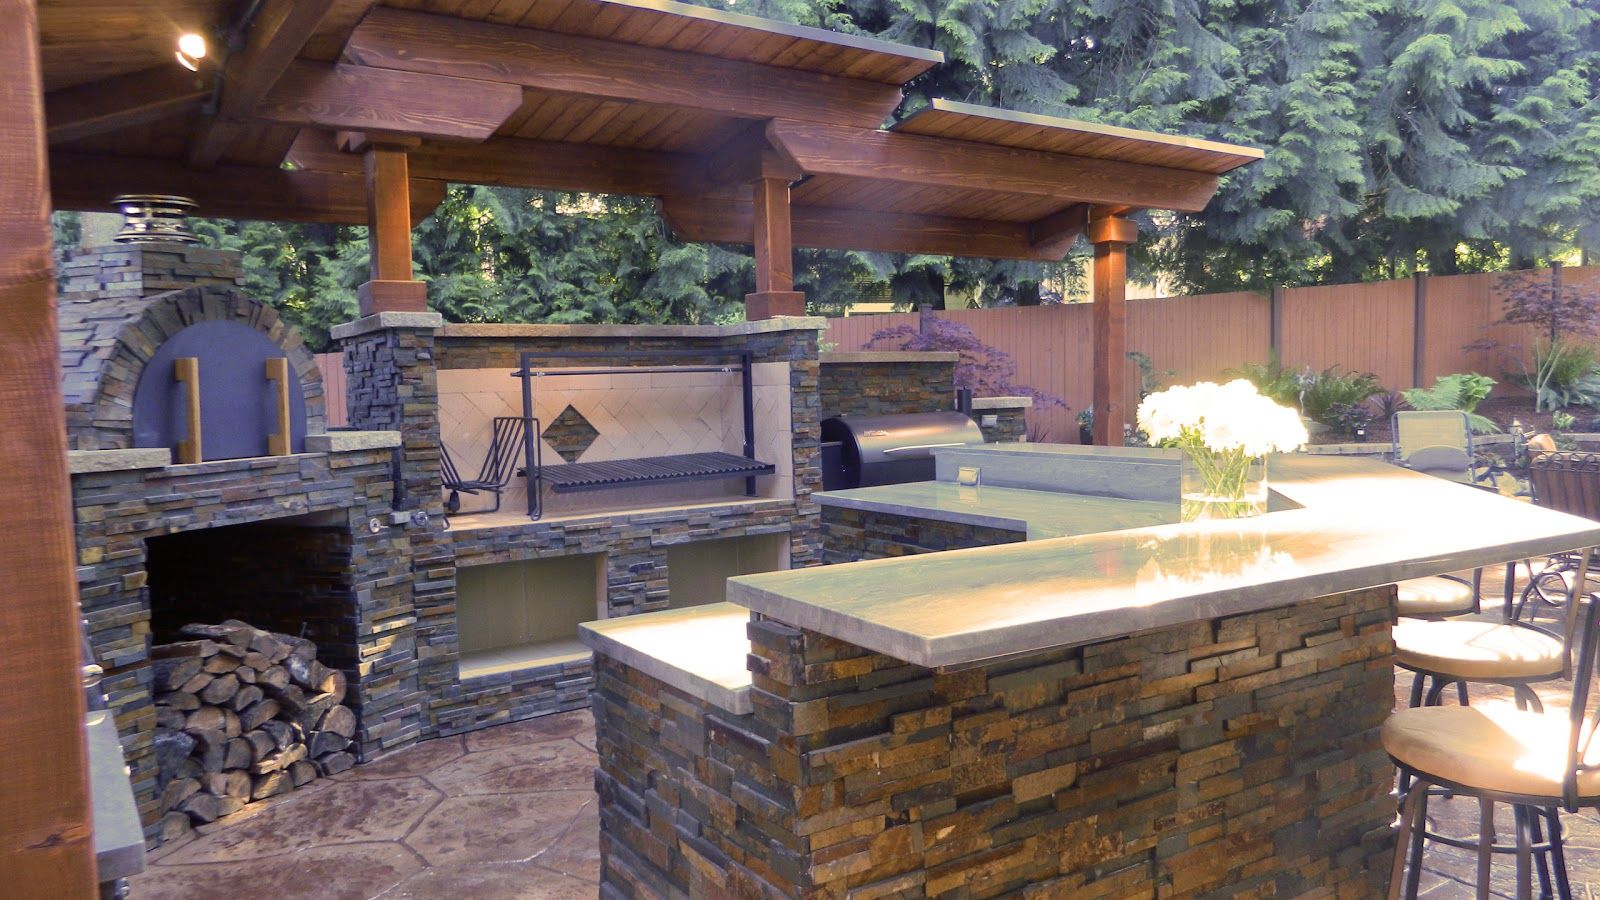 outdoor kitchen oven laminate or engineered wood flooring for built in grill and smoker outside bar